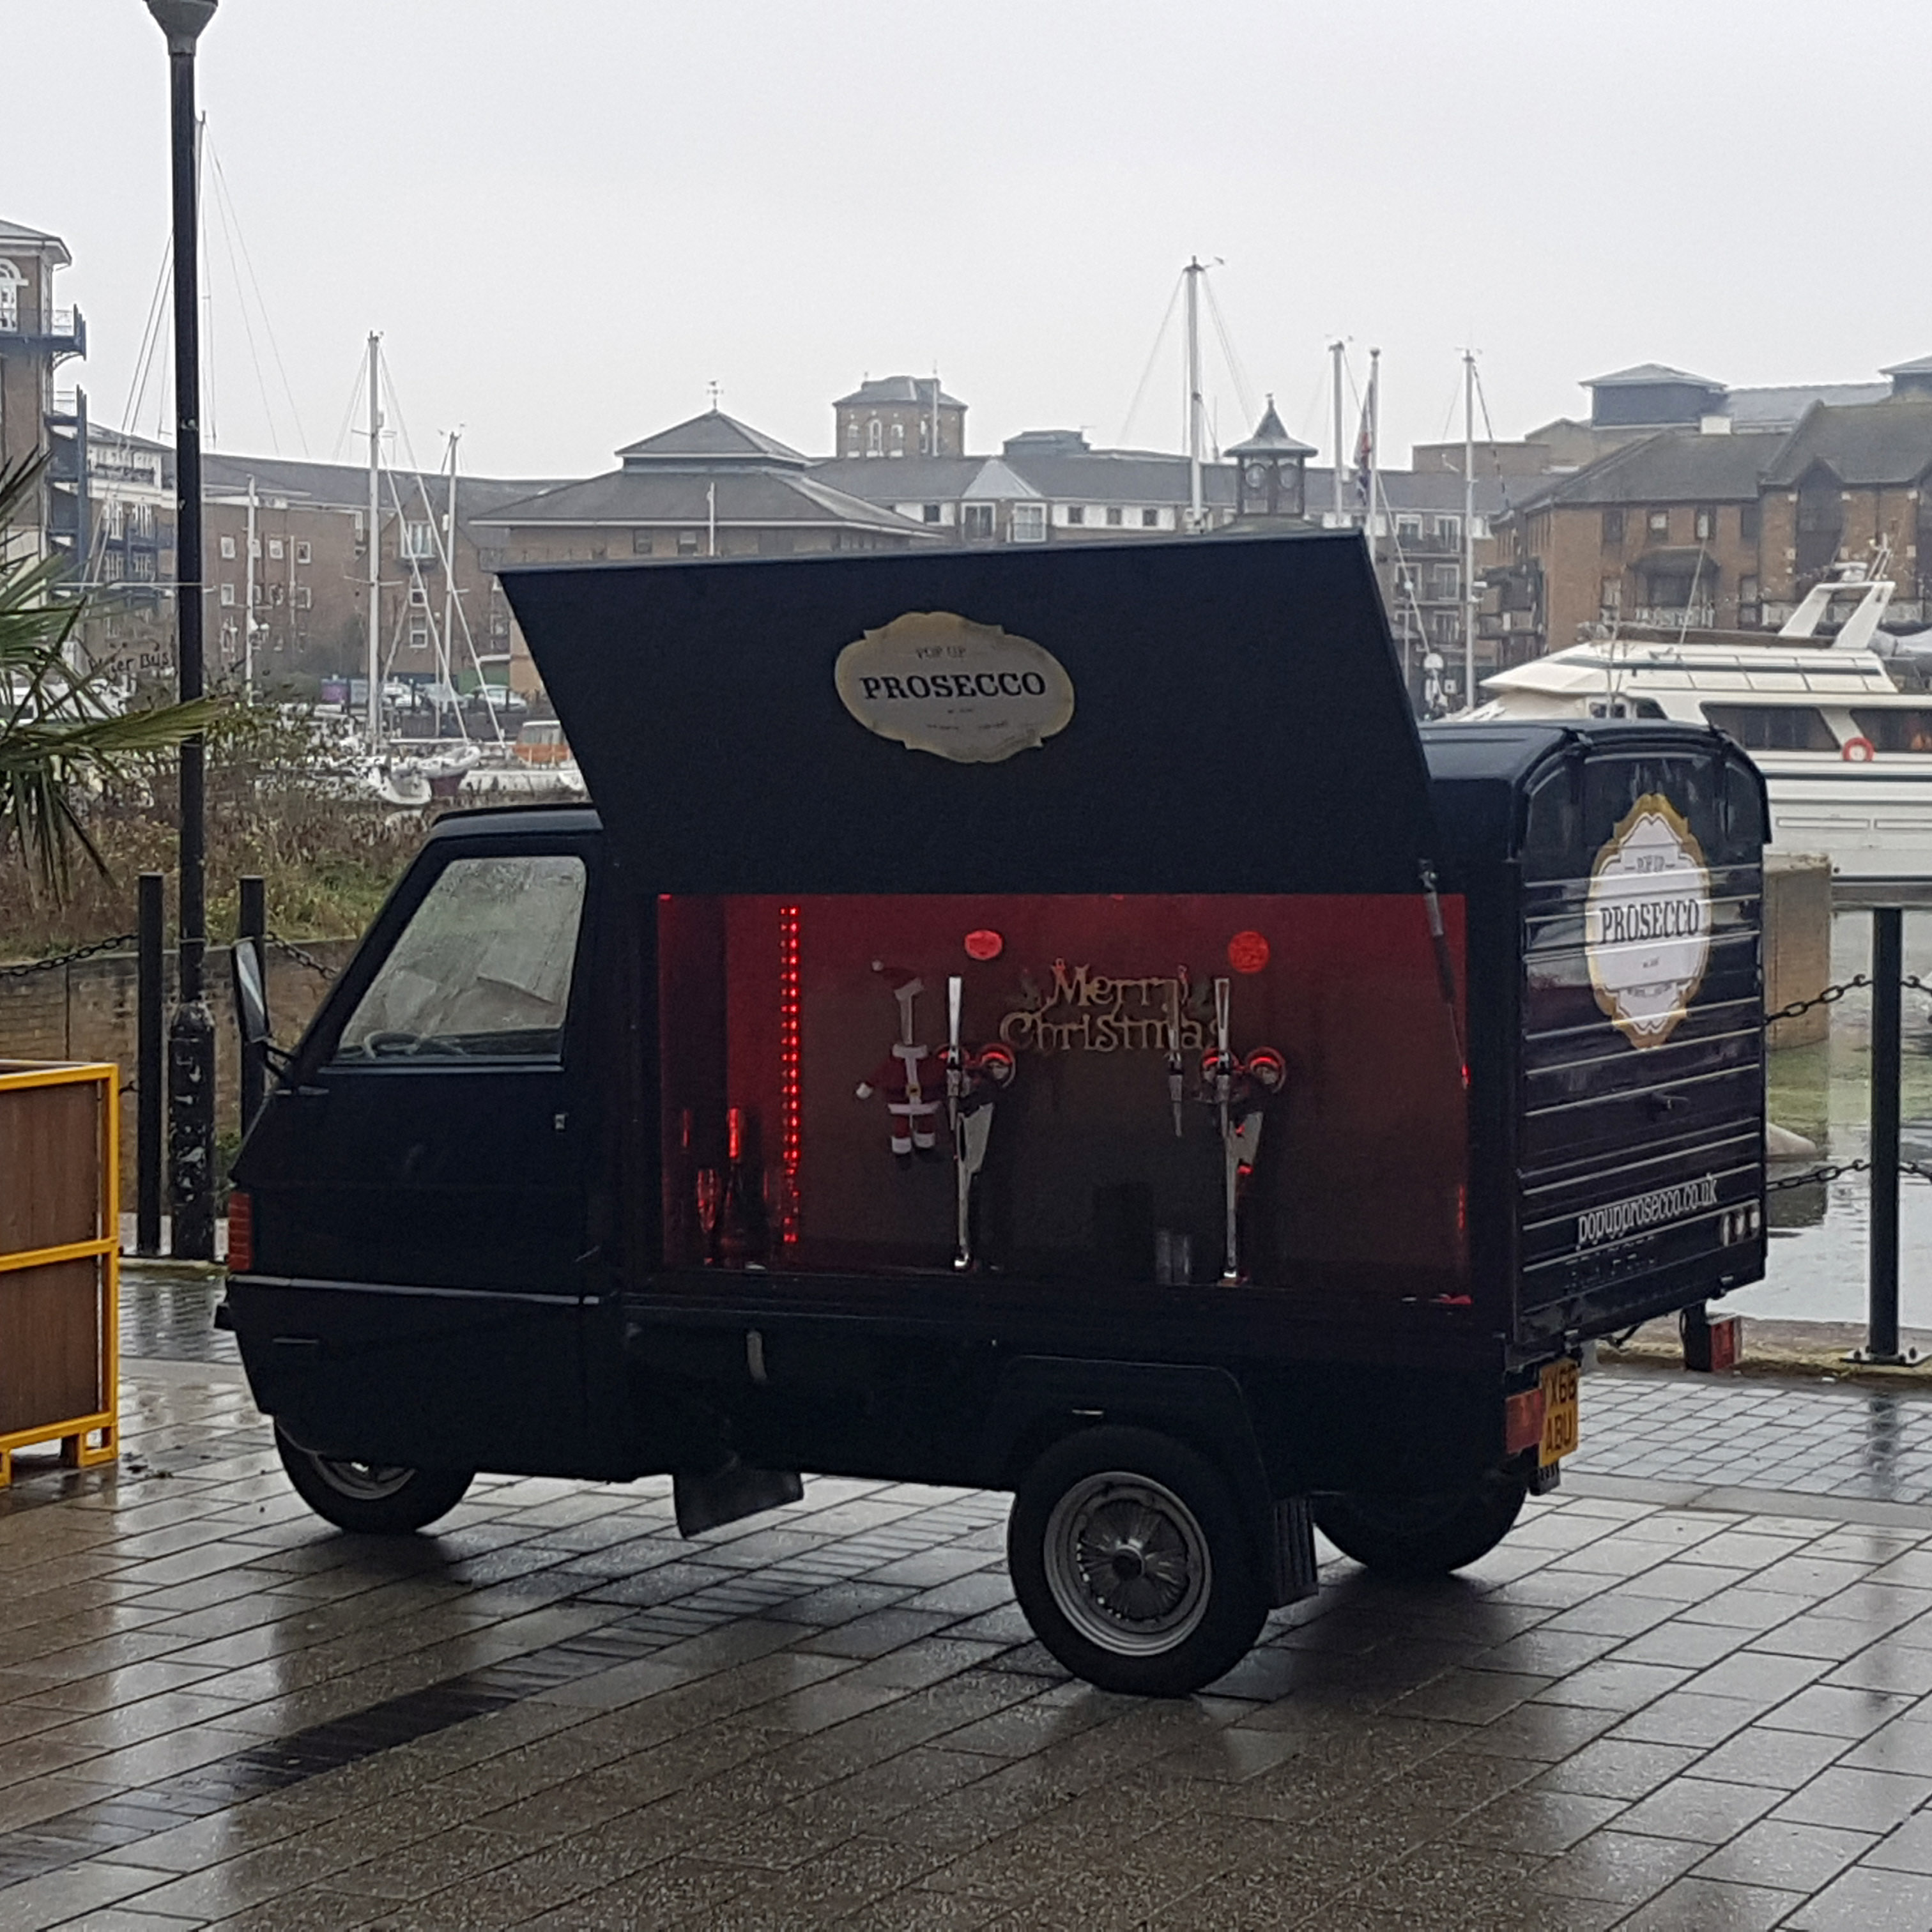 The legendary PopUpProsecco Van